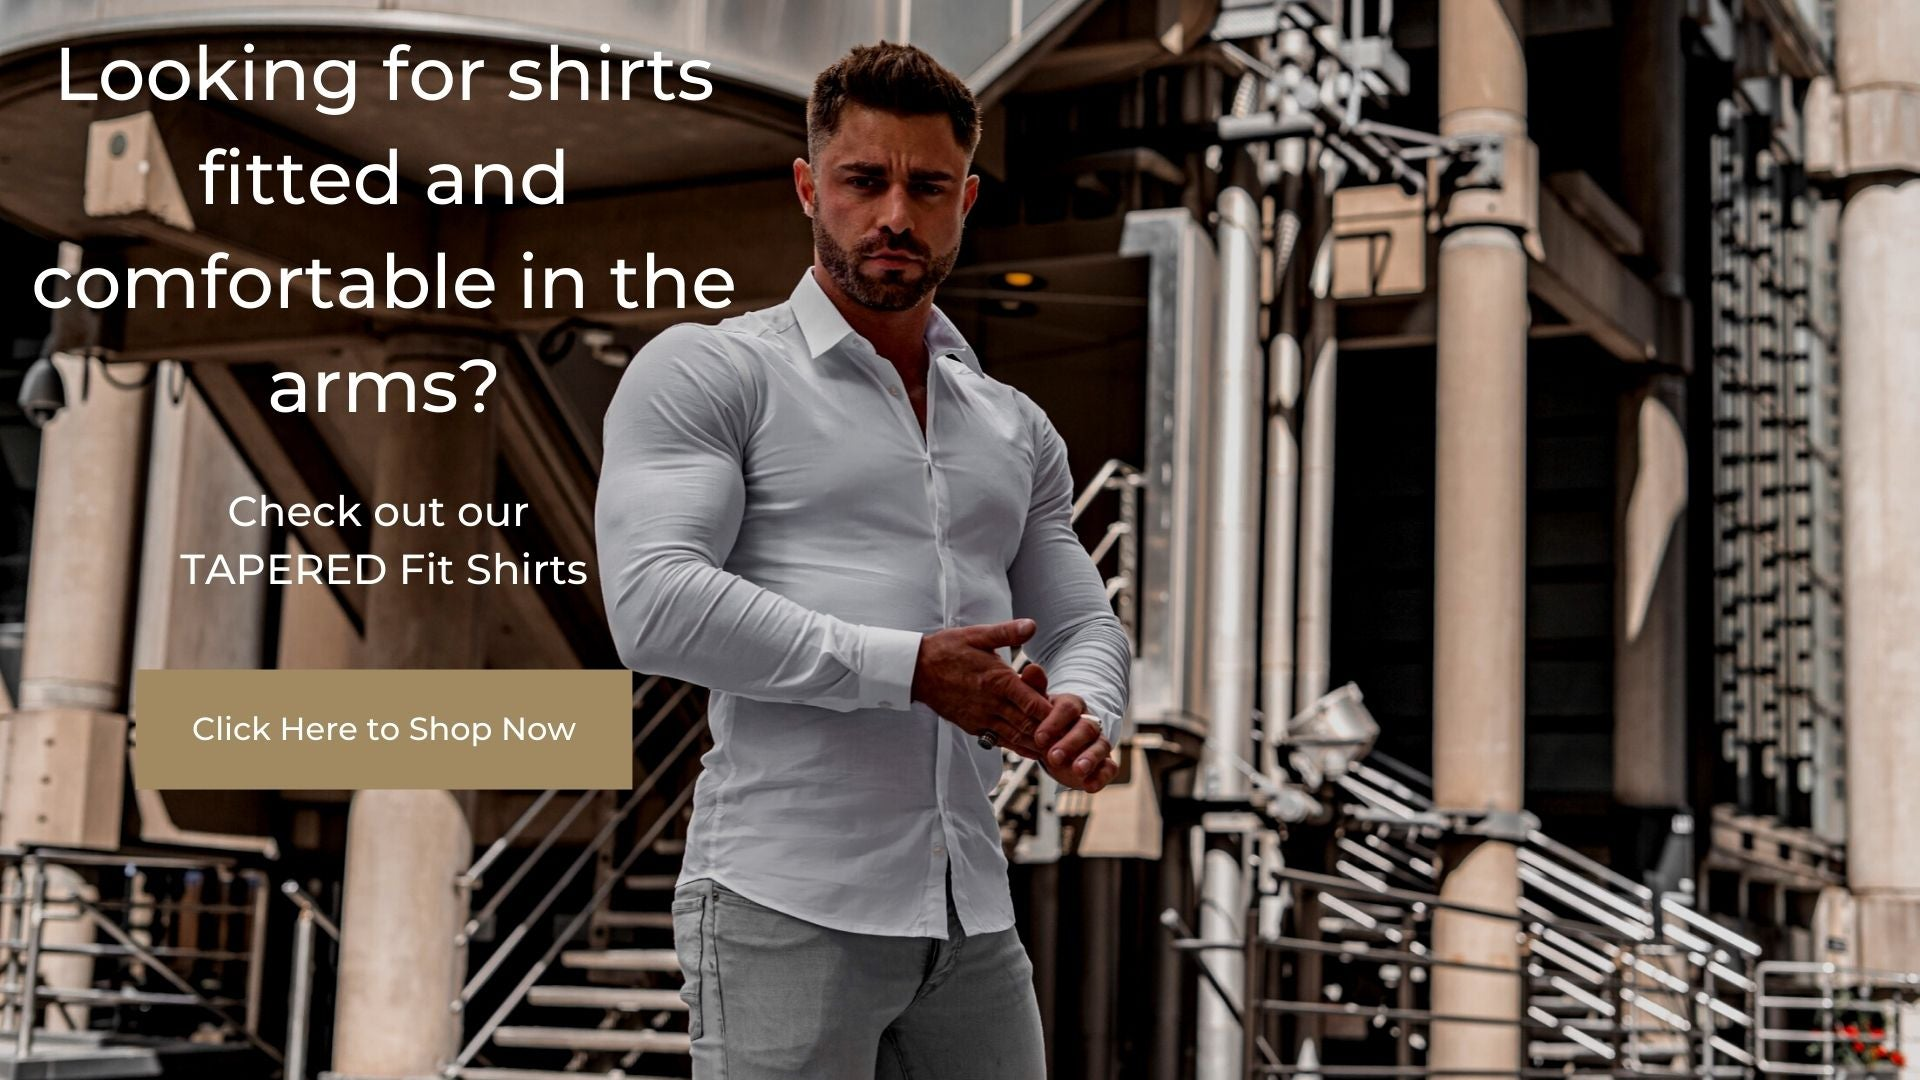 Arms too big for sleeves solution - Shop Shirts for big arms